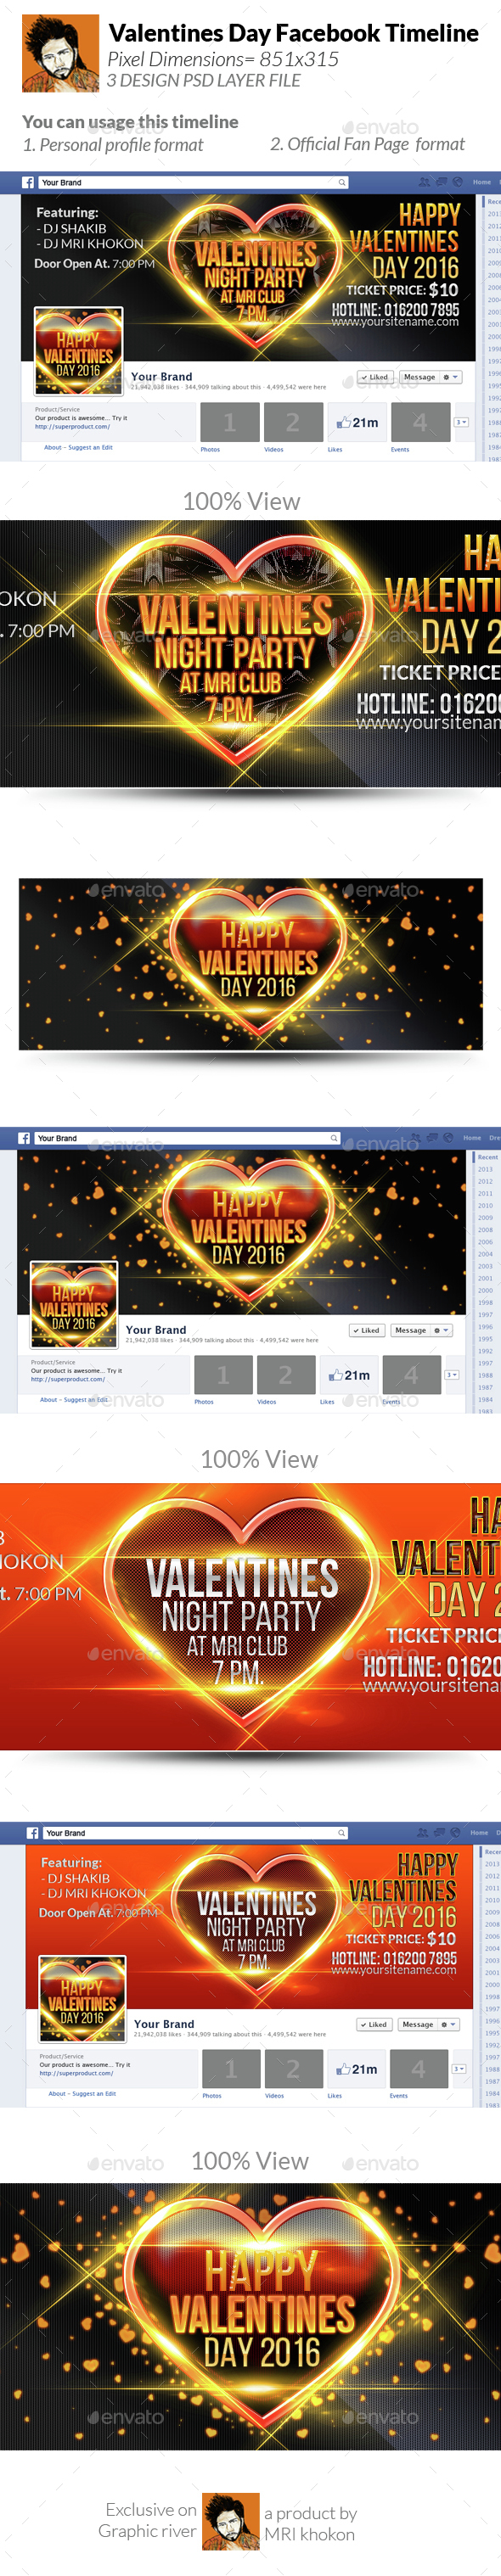 Valentines Party Facebook Timeline Cover - Facebook Timeline Covers Social Media